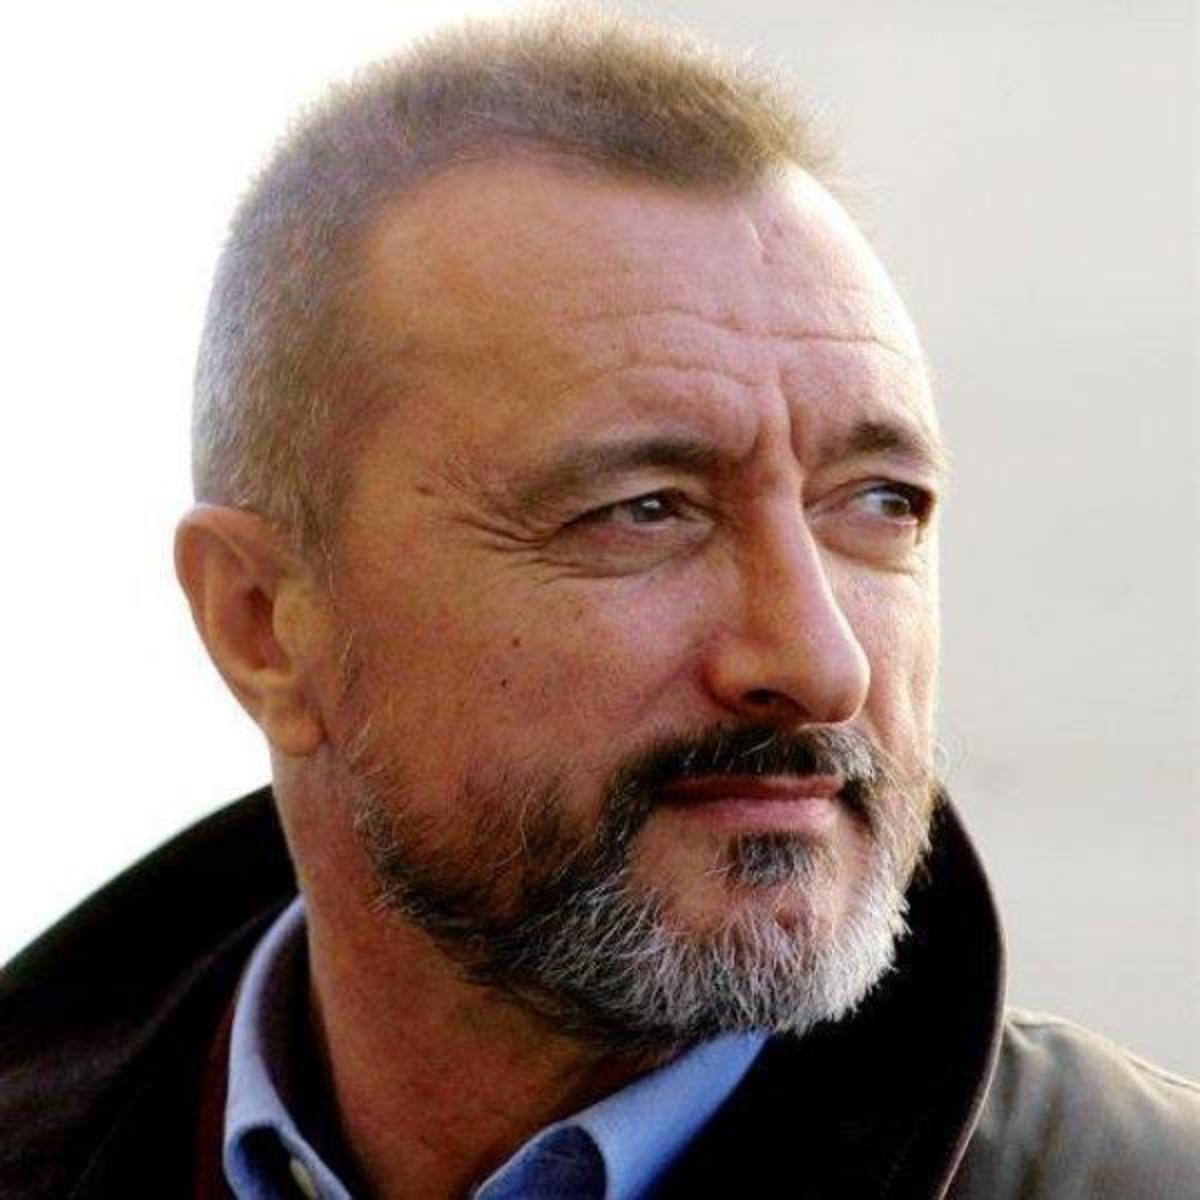 Arturo Pérez- Reverte: His Pen and His (S)words